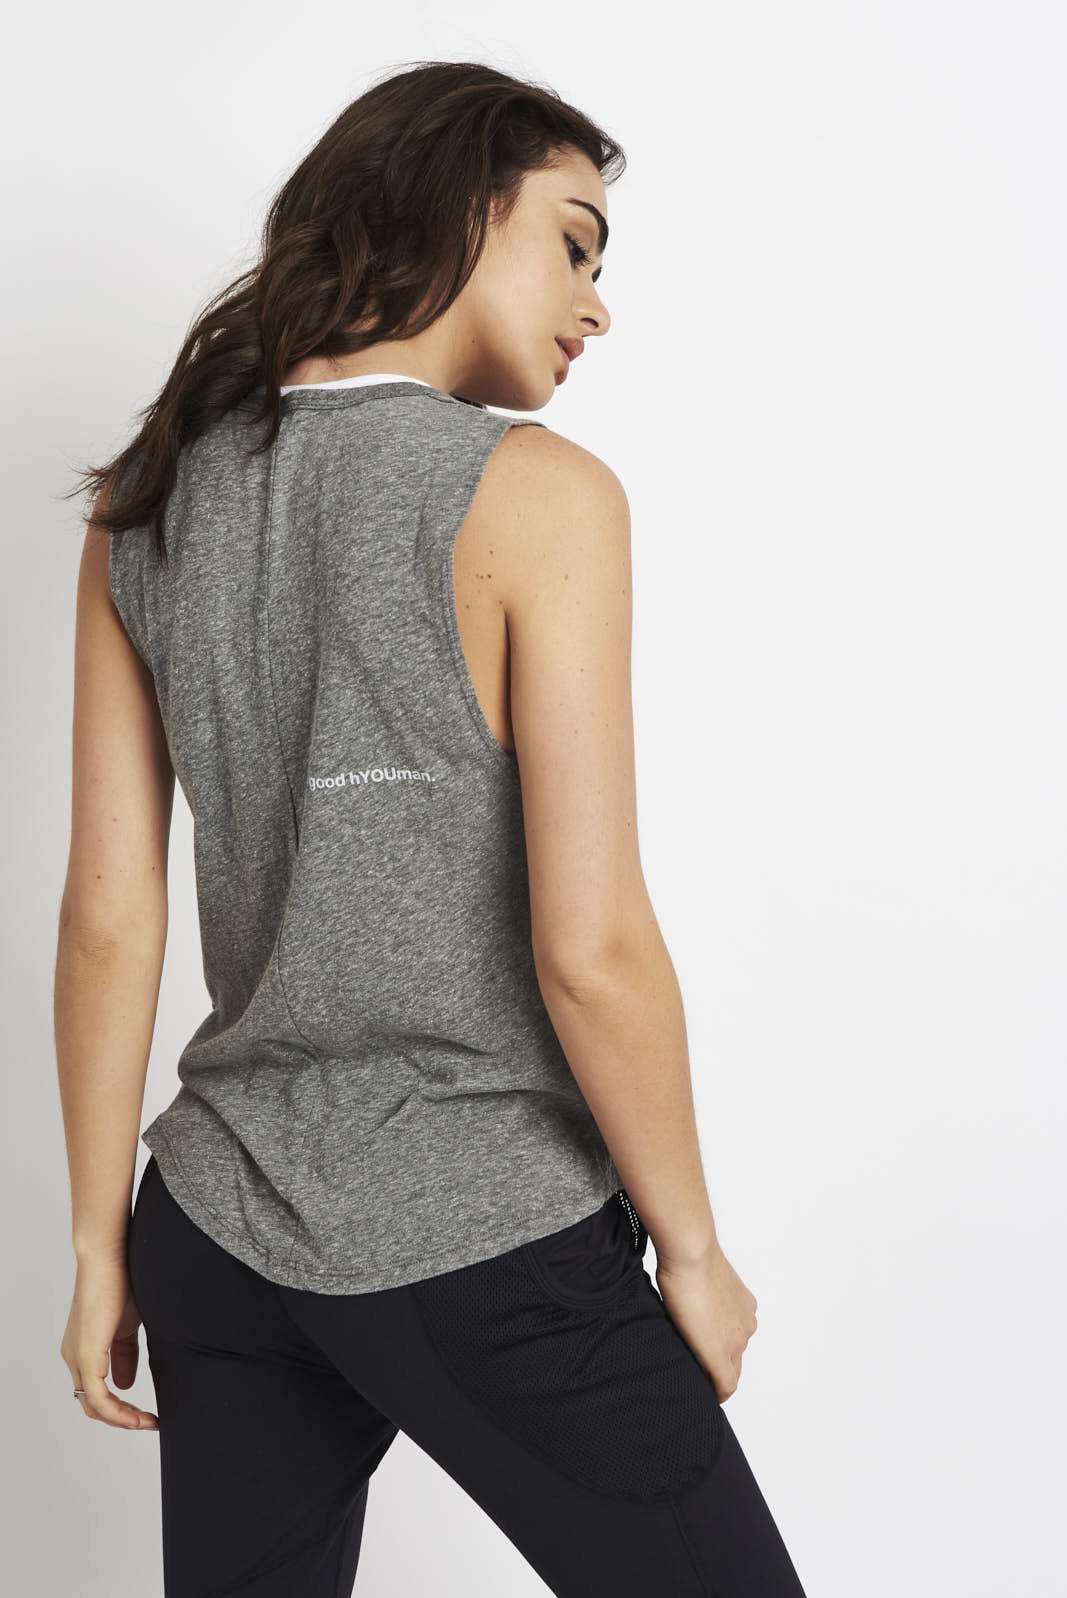 good hYOUman Riley mind/matter tank Grey image 2 - The Sports Edit